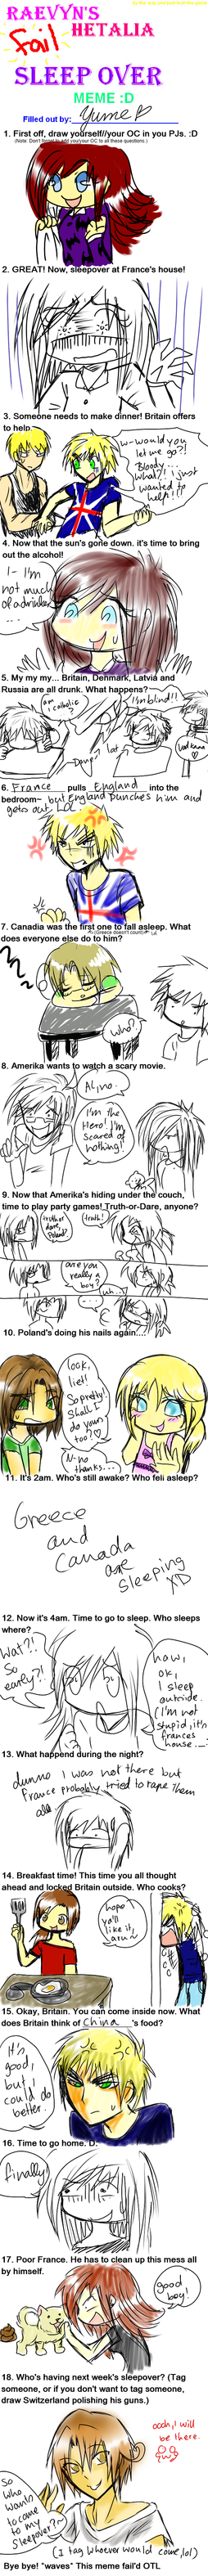 hetalia meme the next one XD by chiorihime